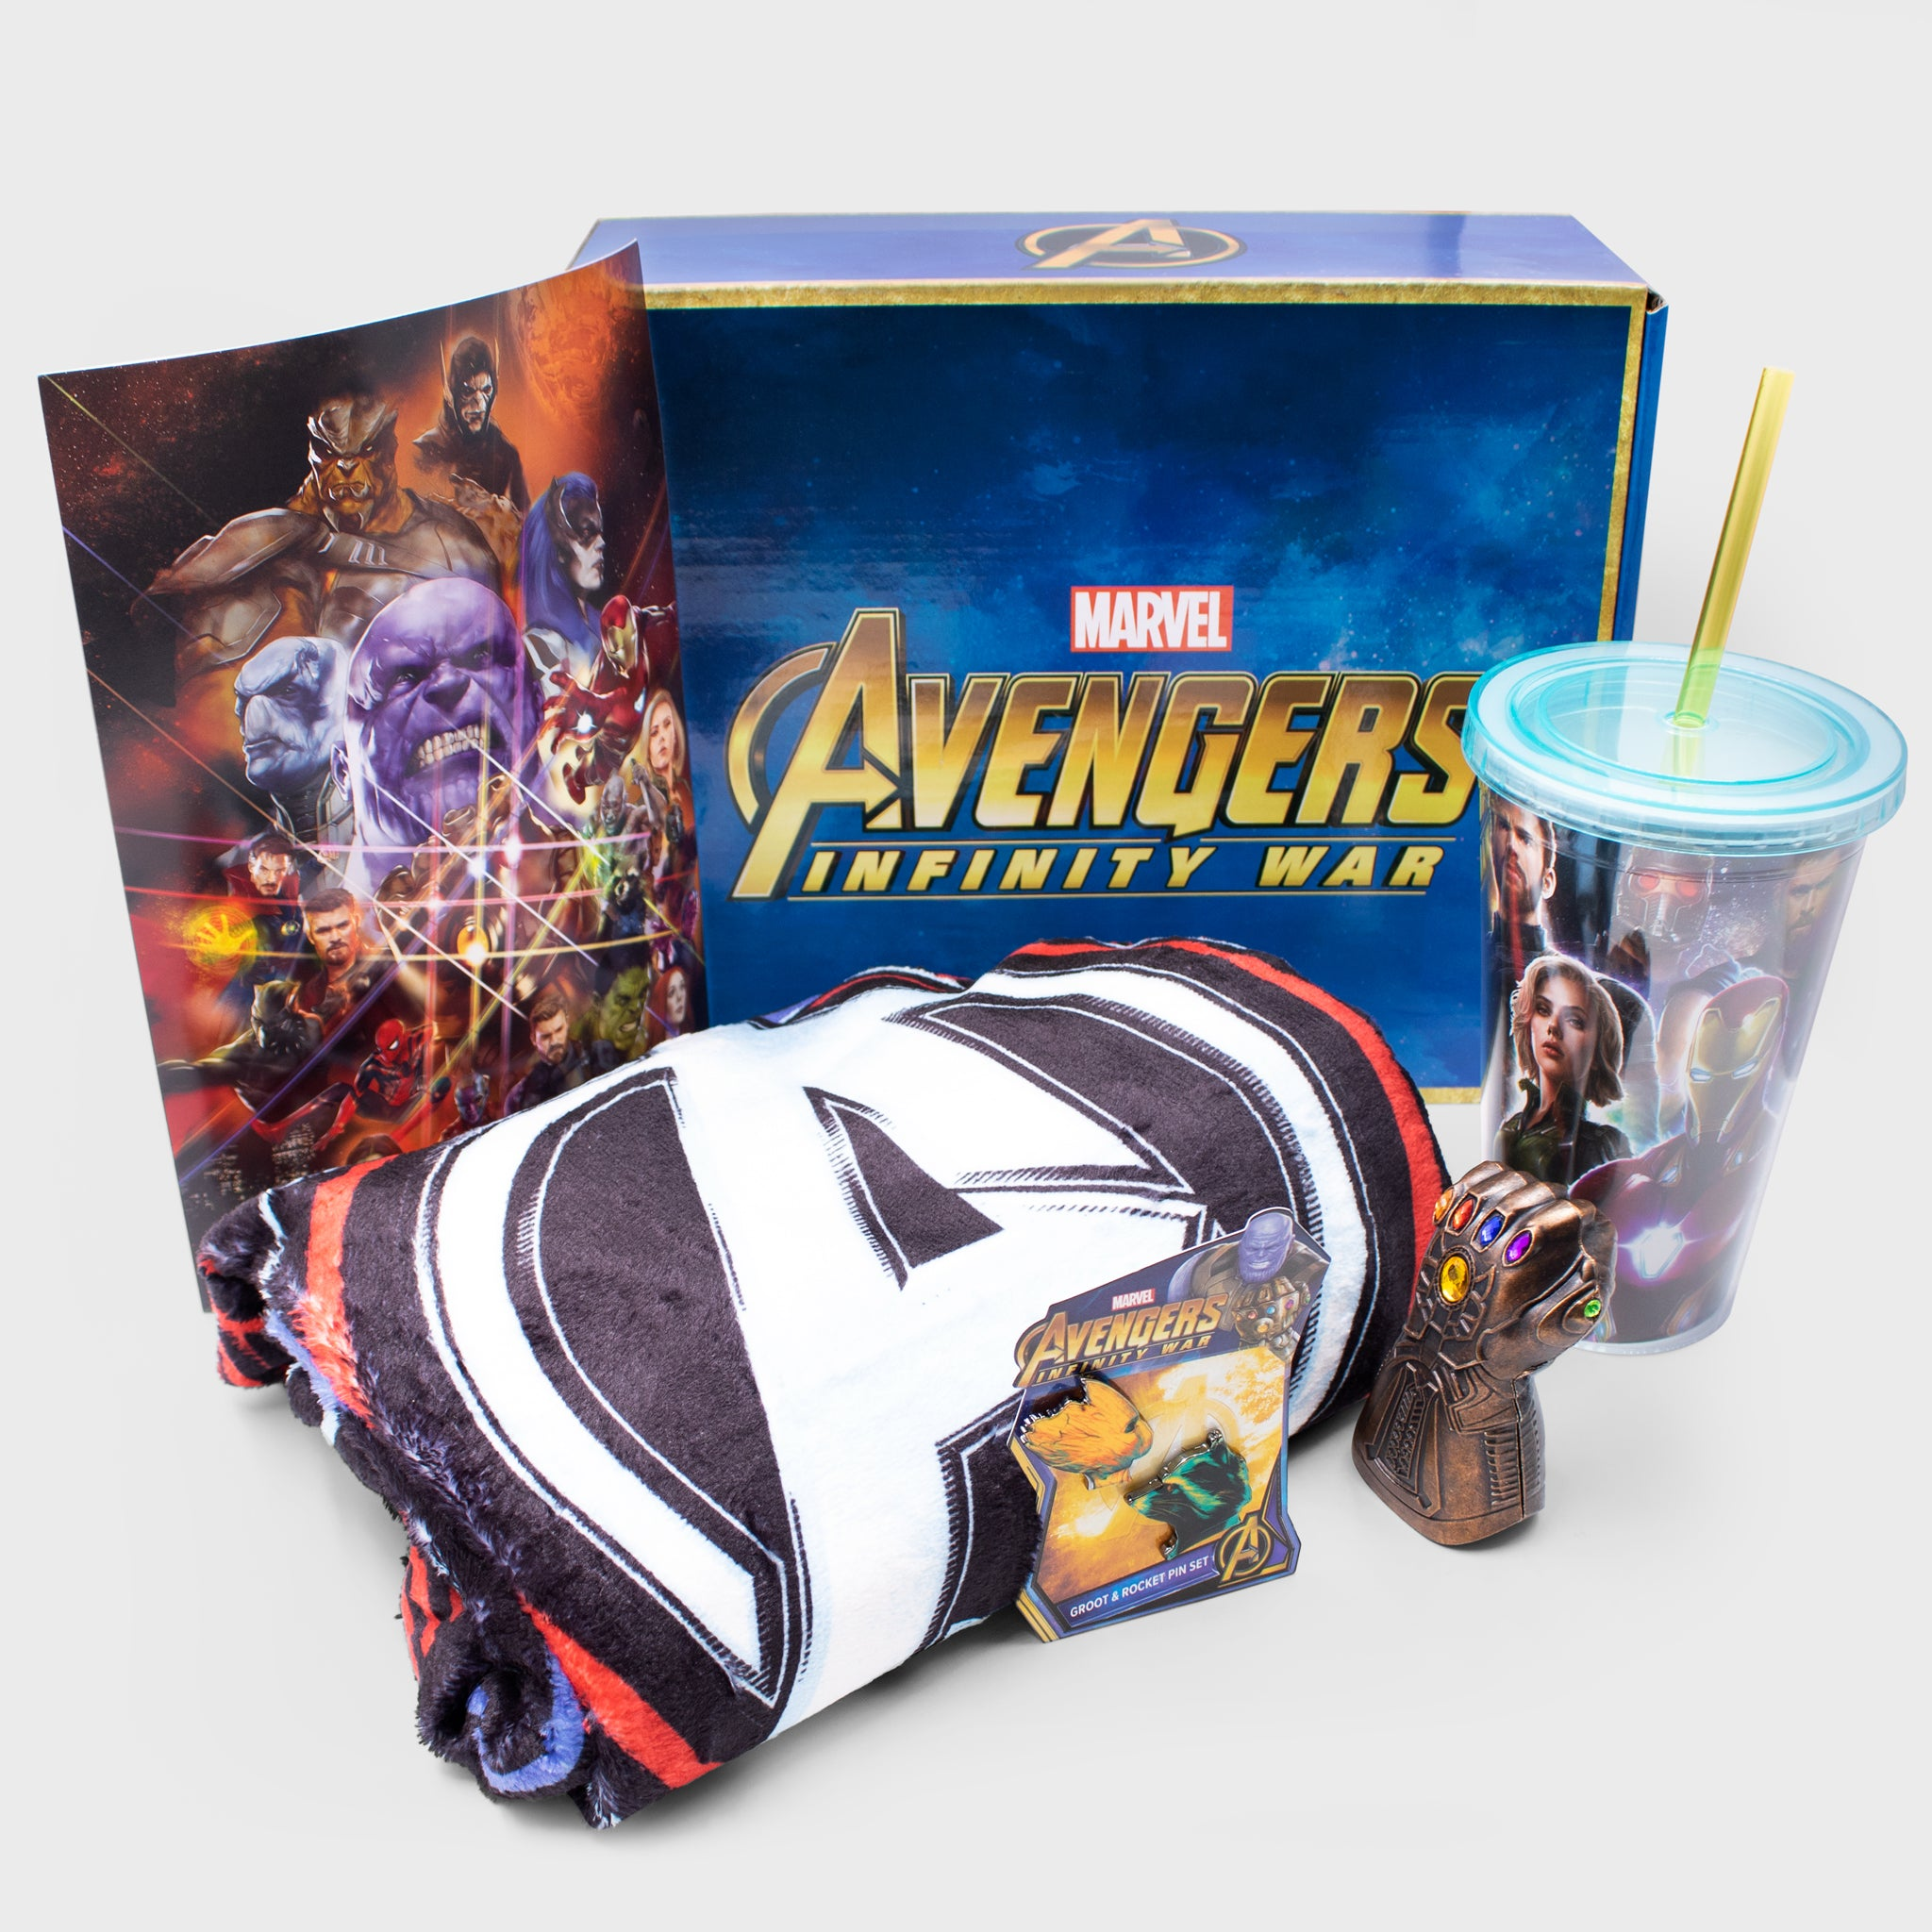 avengers infinity war marvel entertainment iron man guardians of the galaxy captain america thanos thor black widow hawkeye spider-man hulk collectibles box accessories walmart retail exclusive culturefly